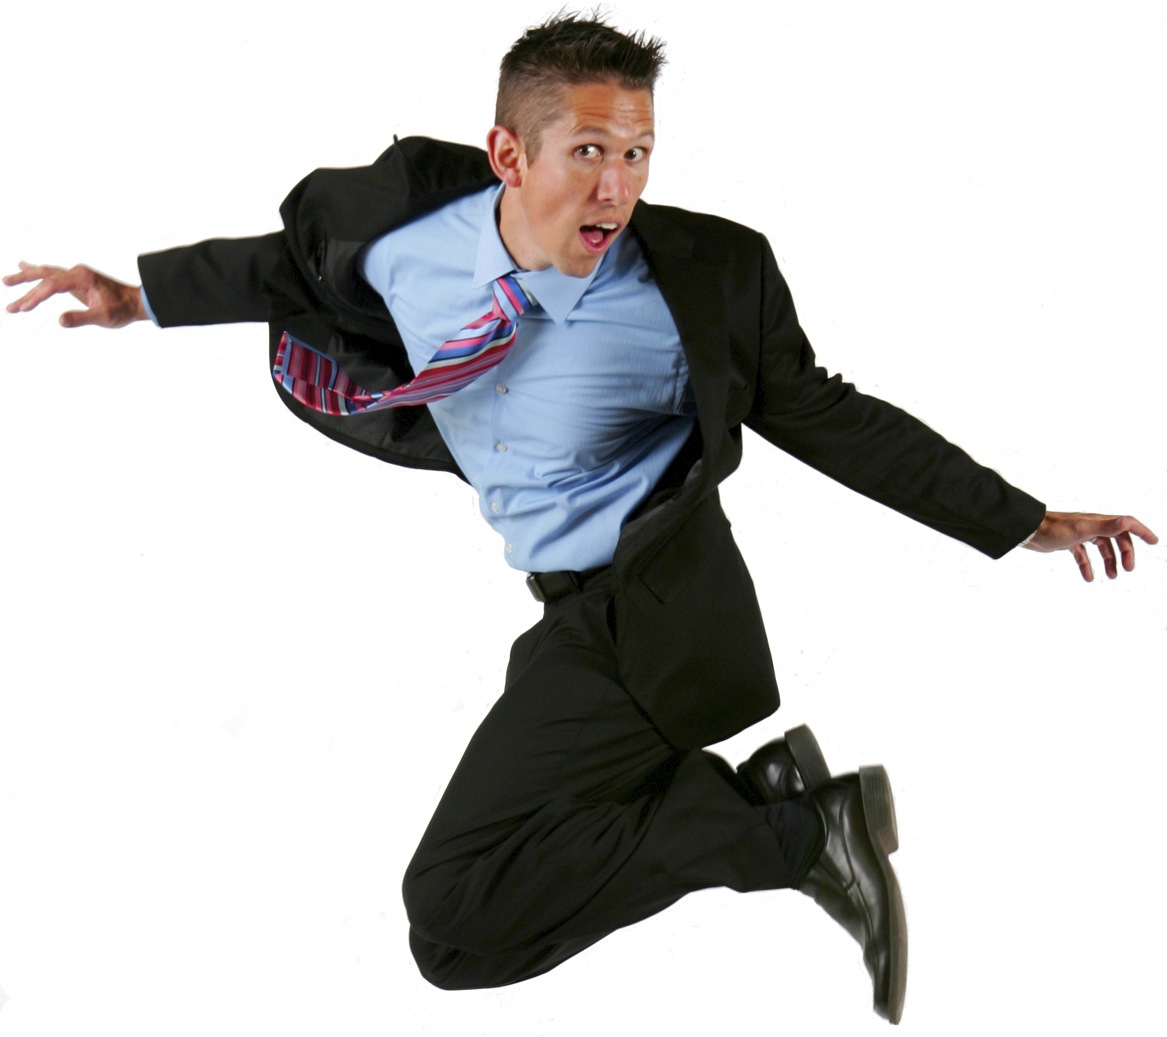 Hal Elrod Jumping In a Suit